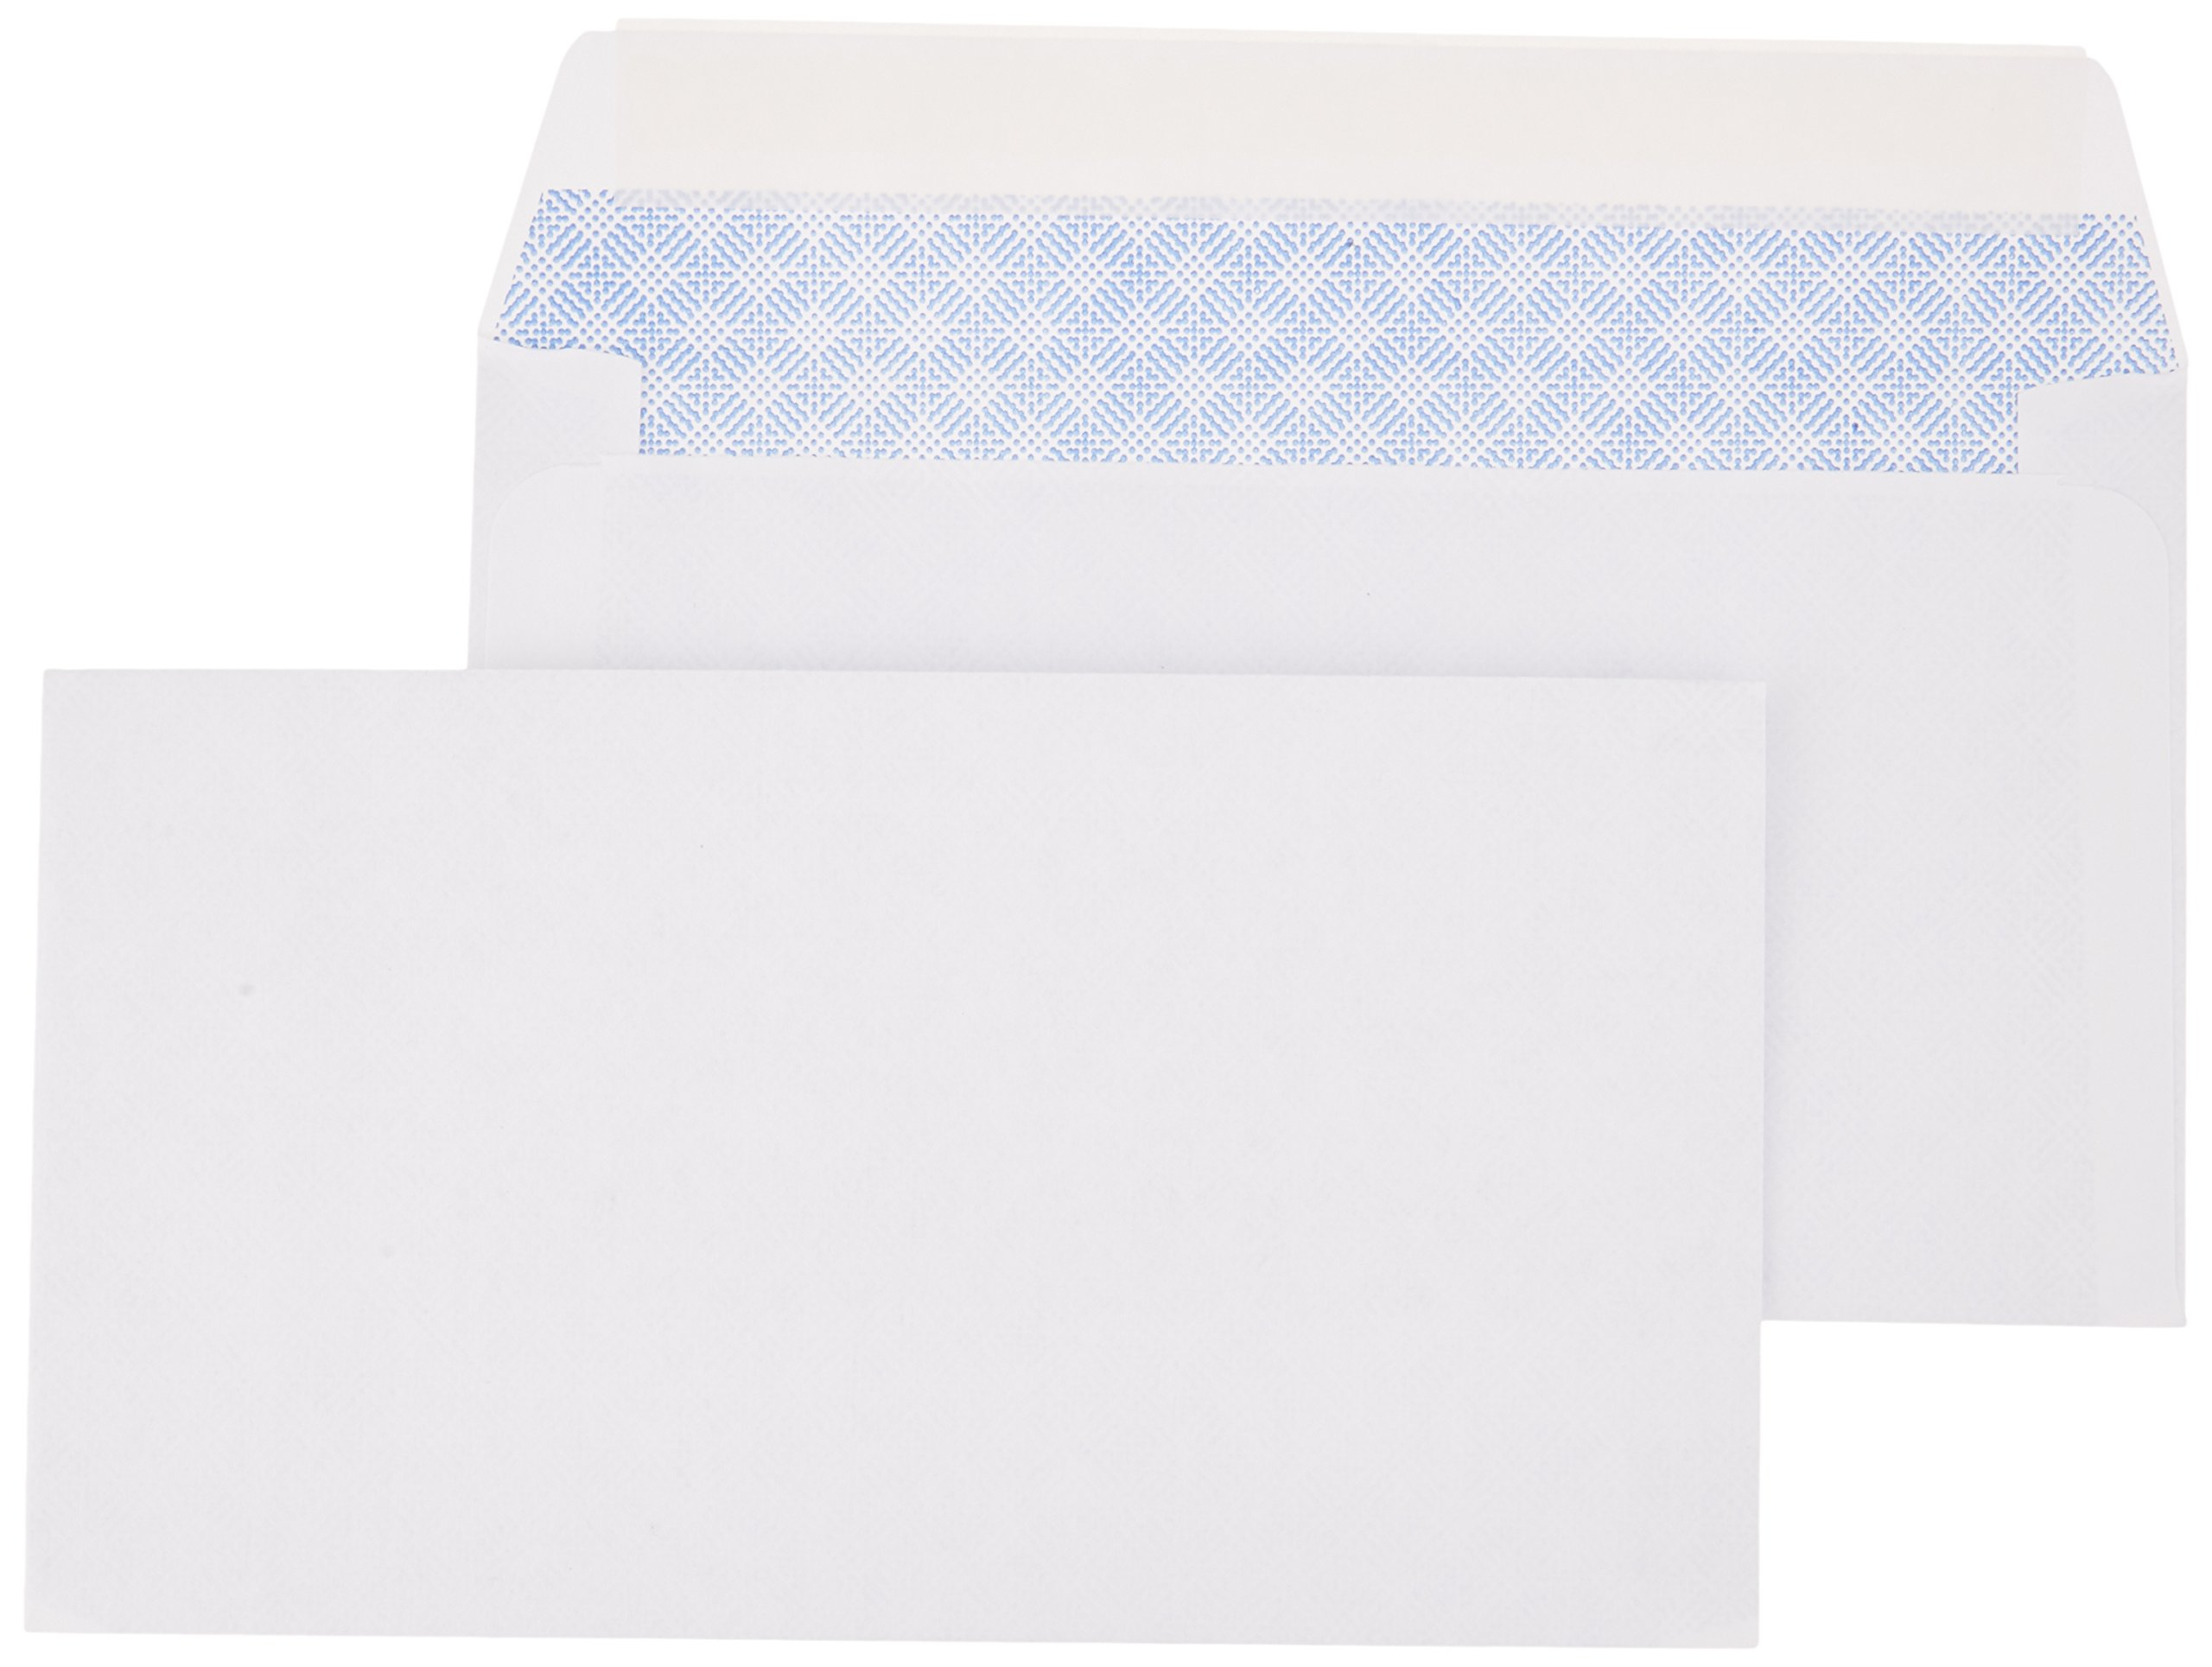 AmazonBasics #6 3/4 Security-Tinted Envelope, Peel & Seal, 300-Pack